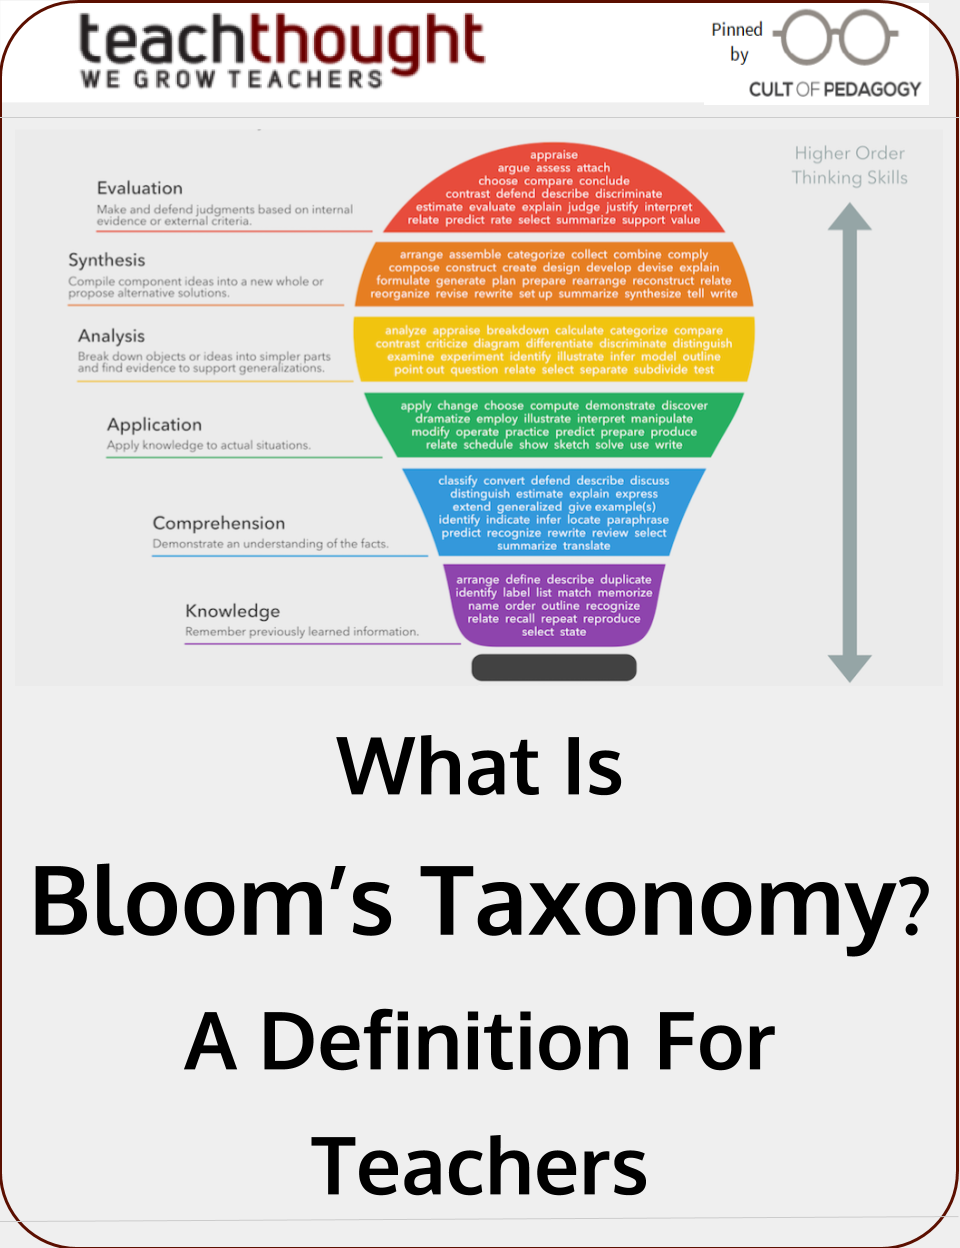 Many Educator Love Bloom S Taxonomy Because It Give Them A Way To Think About Their Teaching And The Subsequent Learn Learning Coach Theory Describe Two Step Proces Use When Paraphrasing Source